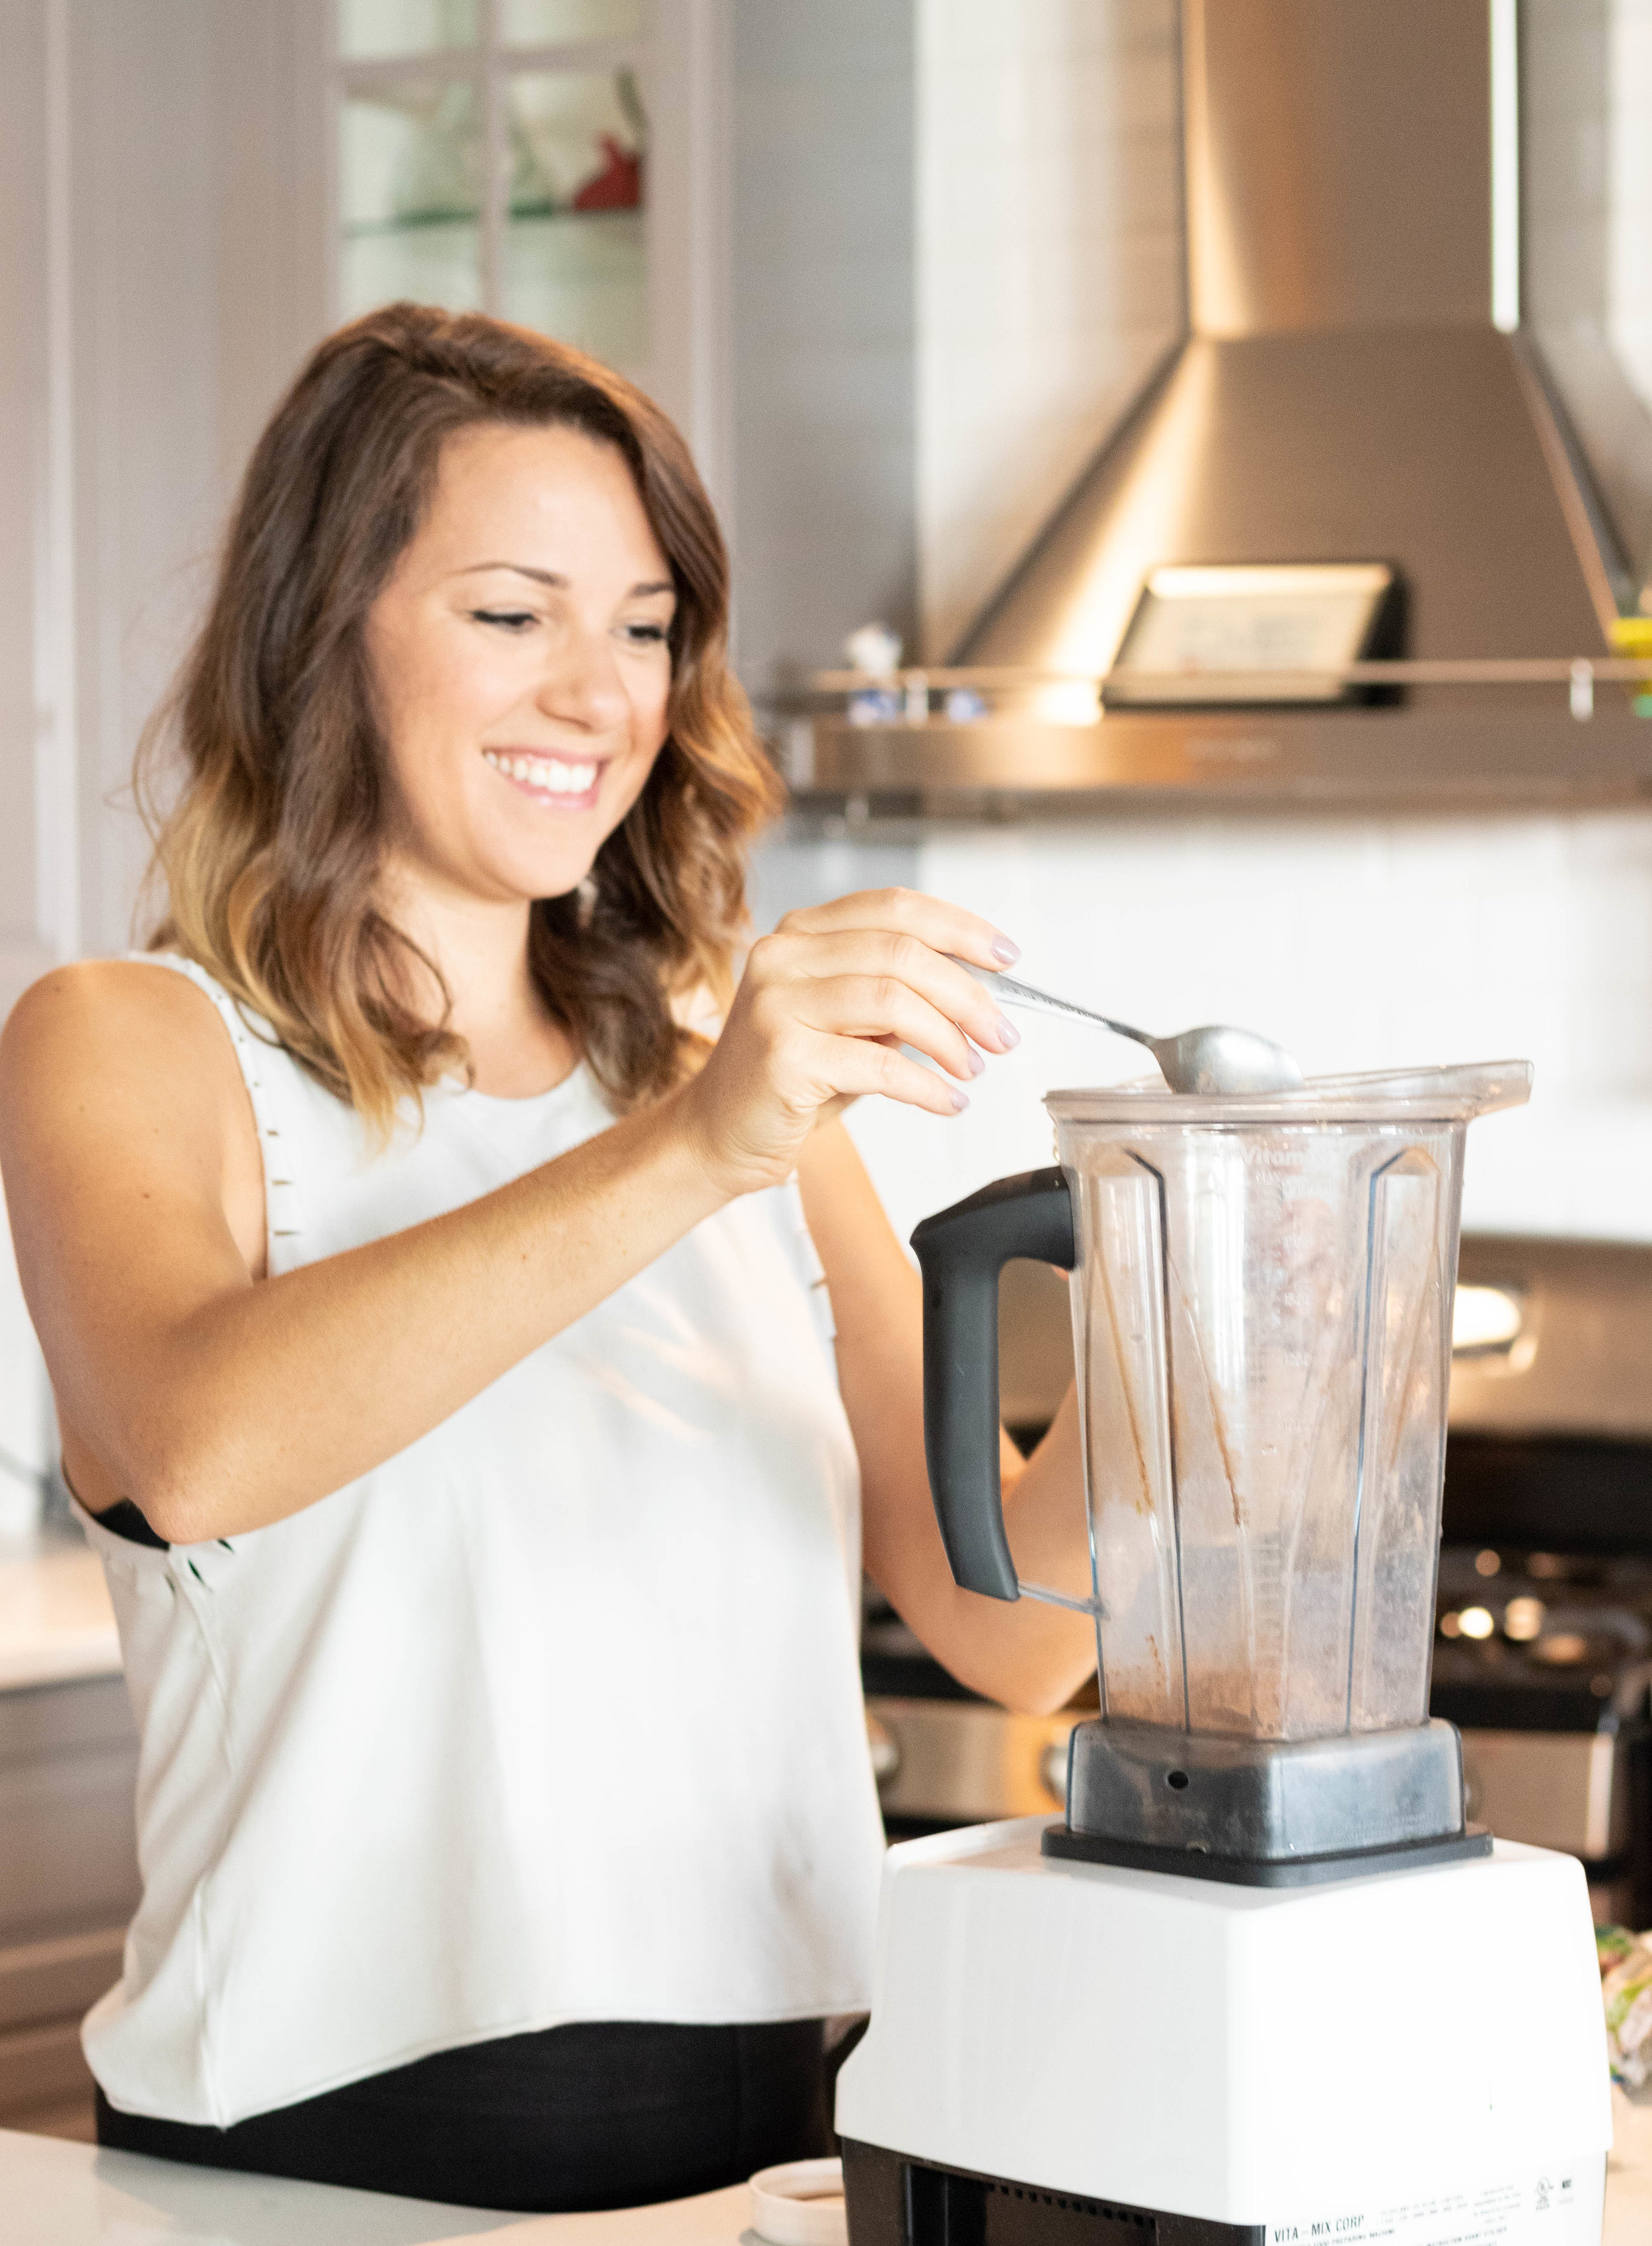 Professional lifestyle portrait of Natasha Wellness health coach making a smoothie in kitchen photographed by Vision Balm in Charleston, SC.